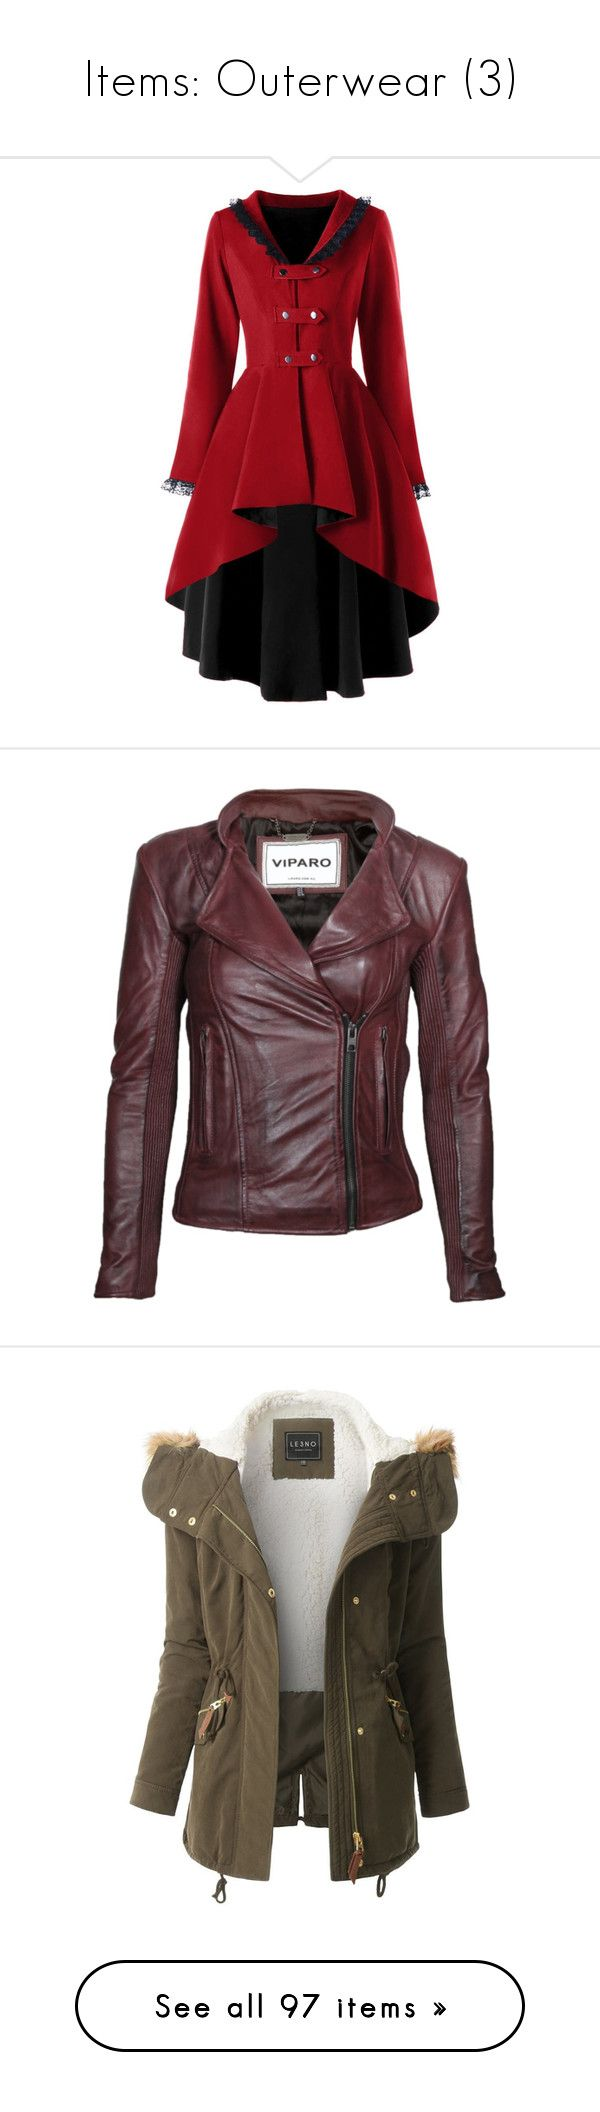 """""""Items: Outerwear (3)"""" by jess-nichole ❤ liked on Polyvore featuring outerwear, coats, jackets, red coat, gothic coat, goth coat, red leather jackets, leather jackets, brown jacket and brown leather jackets"""